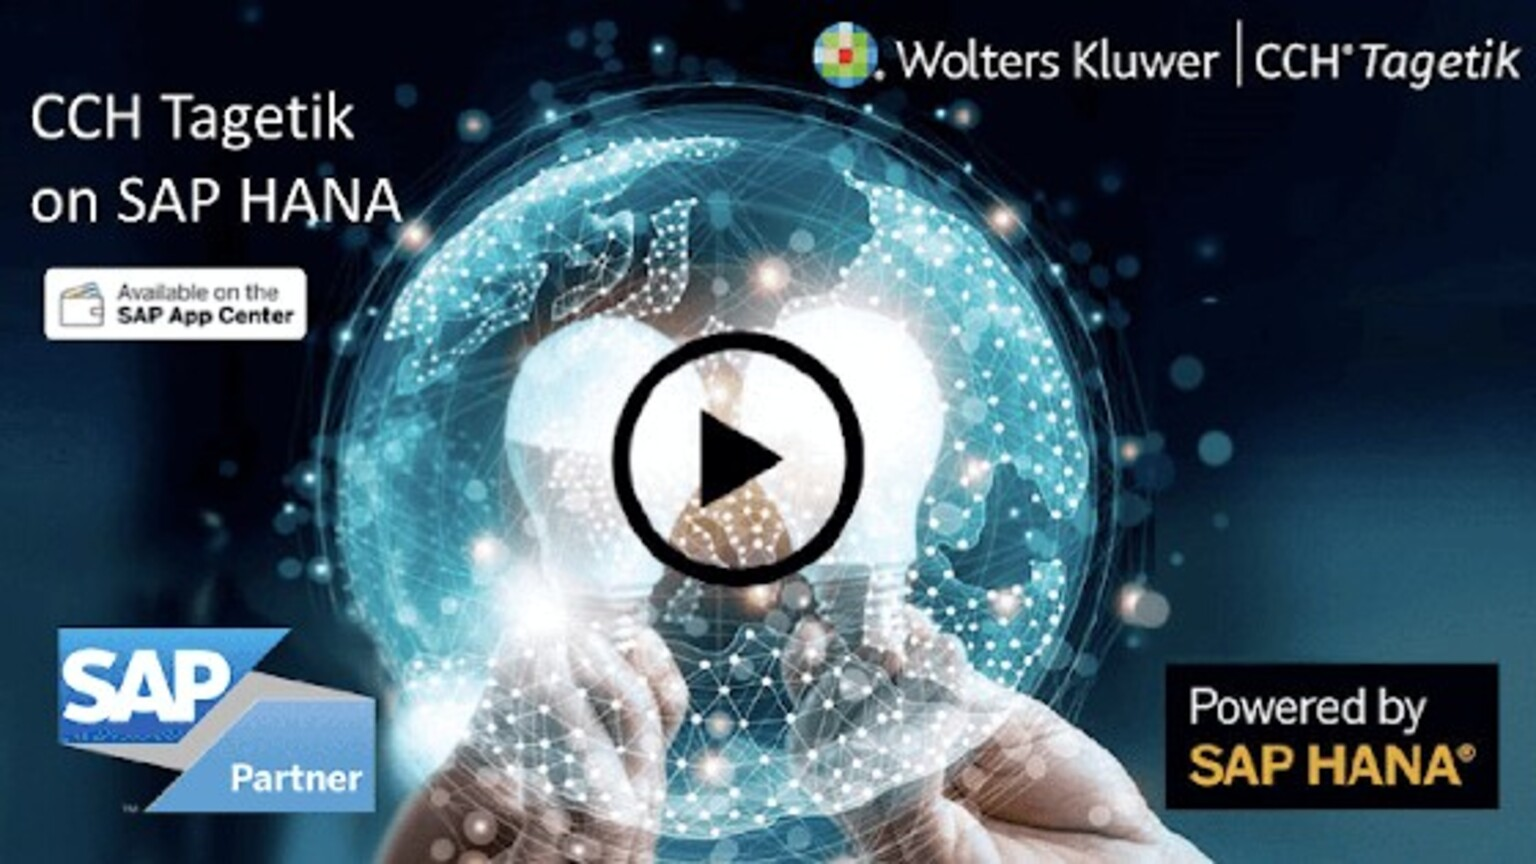 Get Ready for the Future with CCH Tagetik on SAP HANA